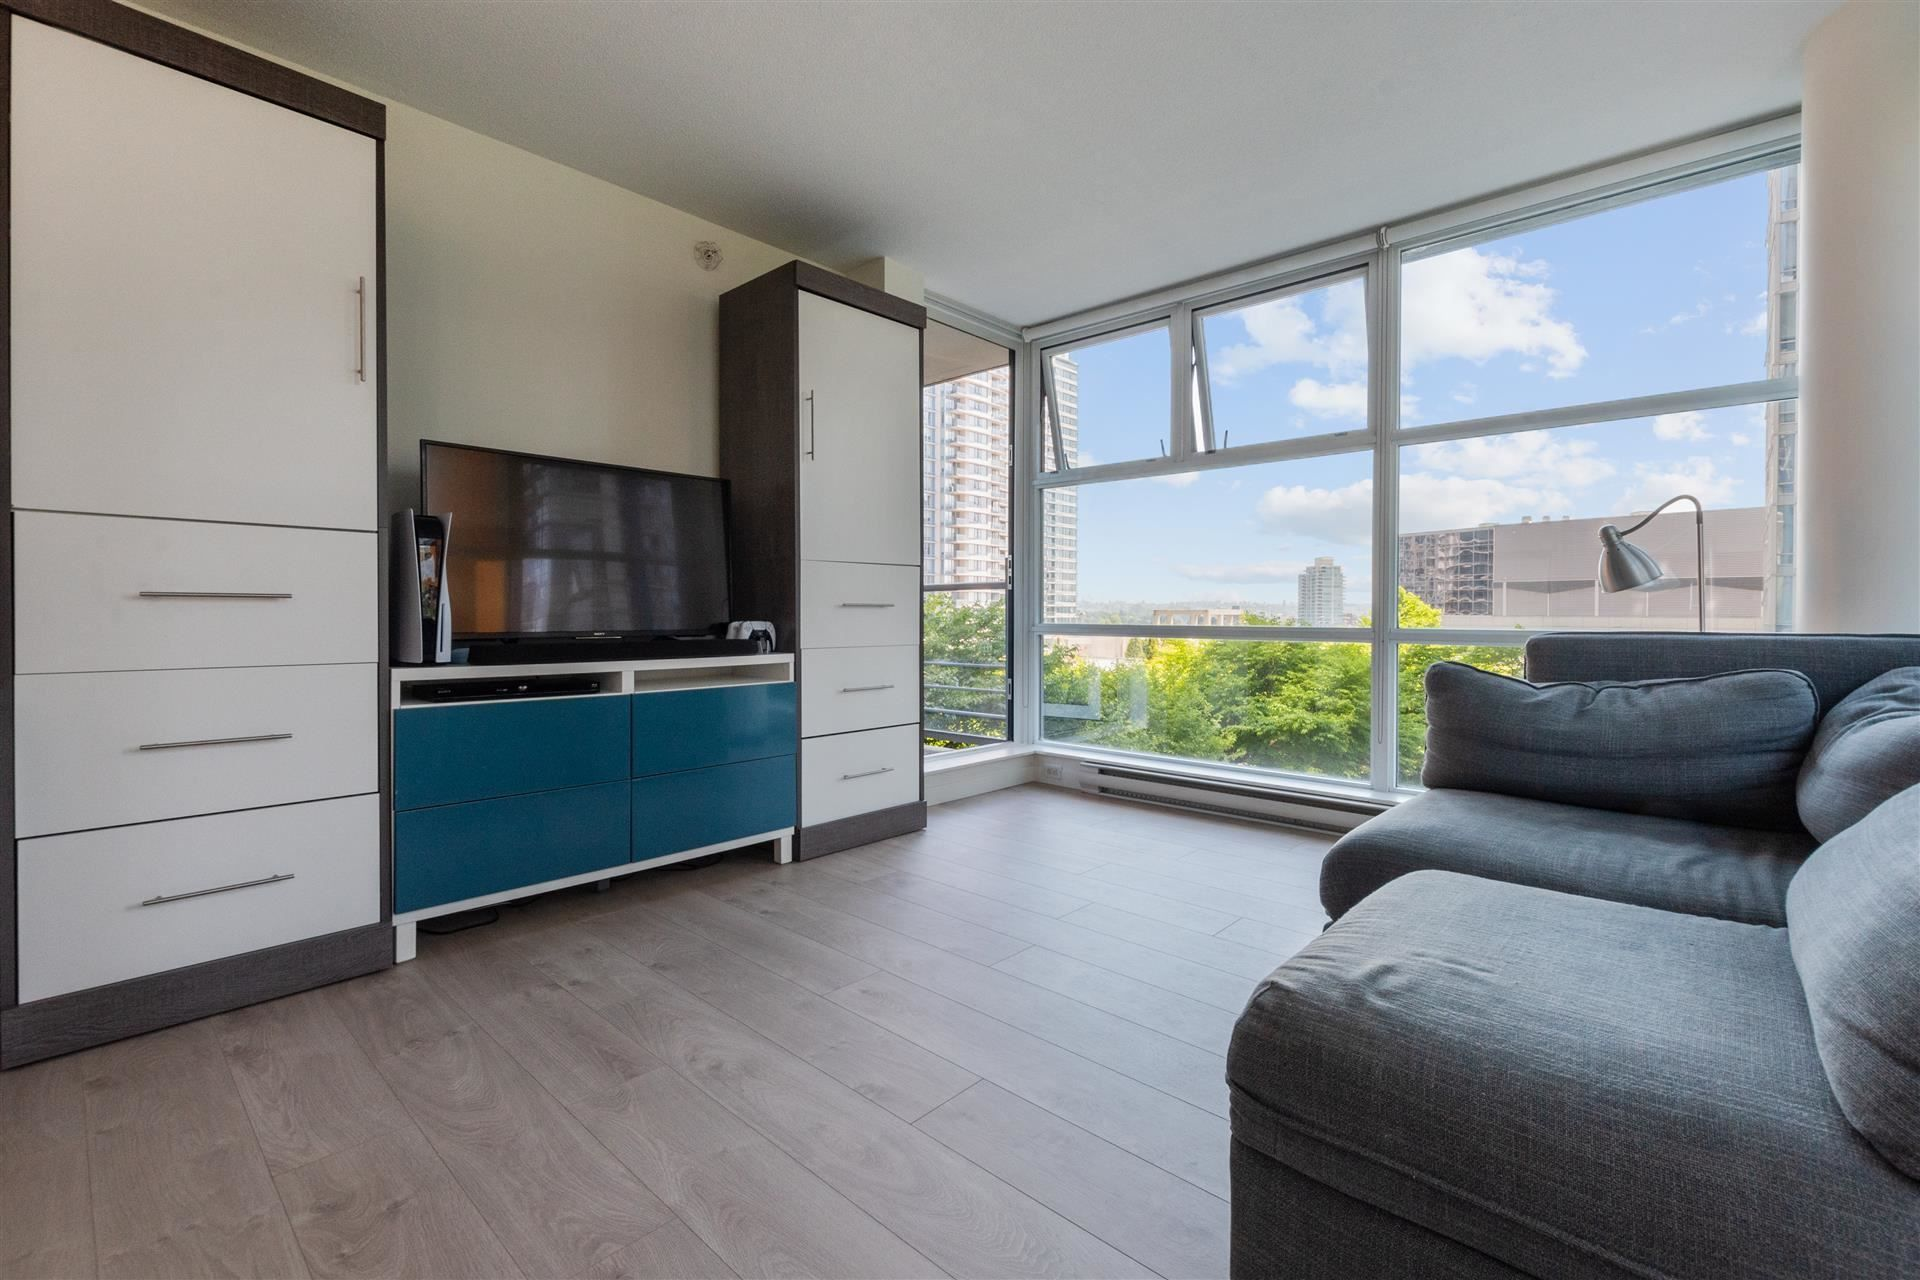 """Main Photo: 501 602 CITADEL Parade in Vancouver: Downtown VW Condo for sale in """"SPECTRUM"""" (Vancouver West)  : MLS®# R2597668"""